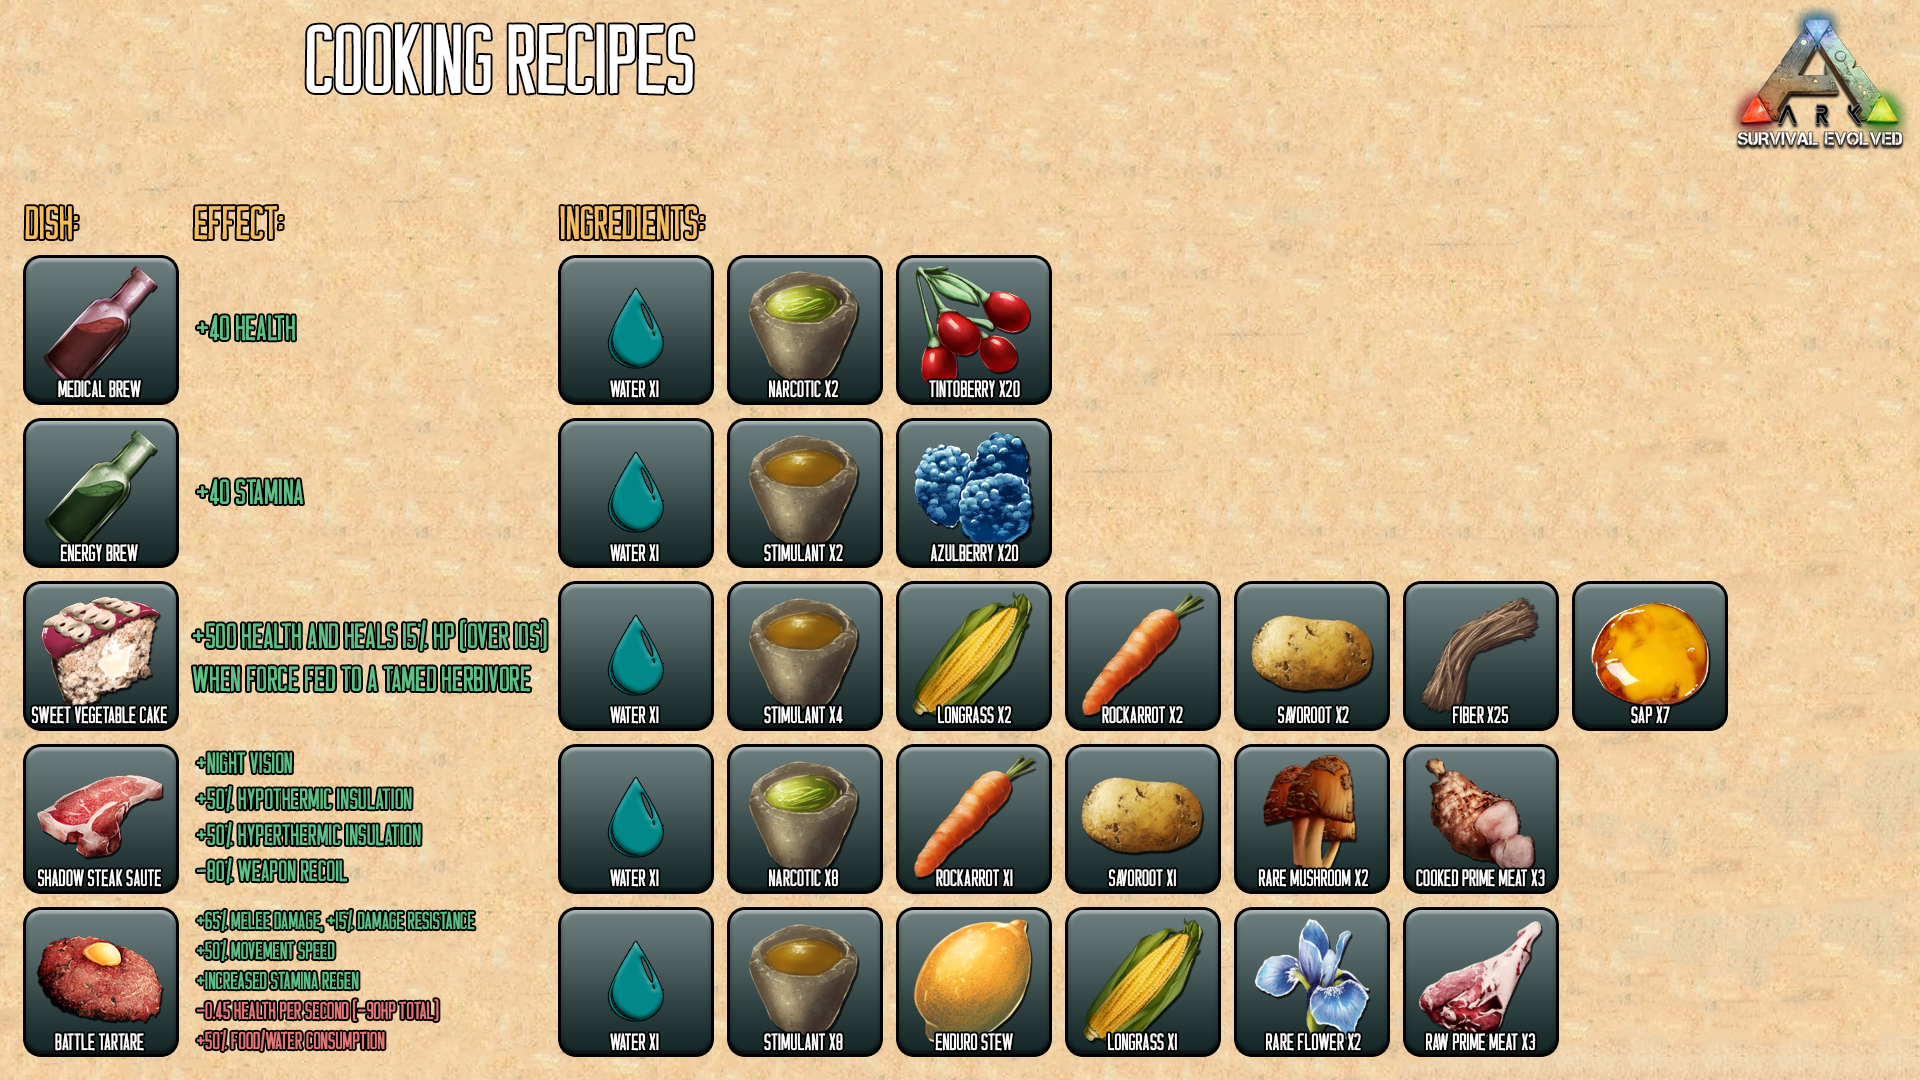 Steam community guide en ark graphical cheat sheets for cooking recipes forumfinder